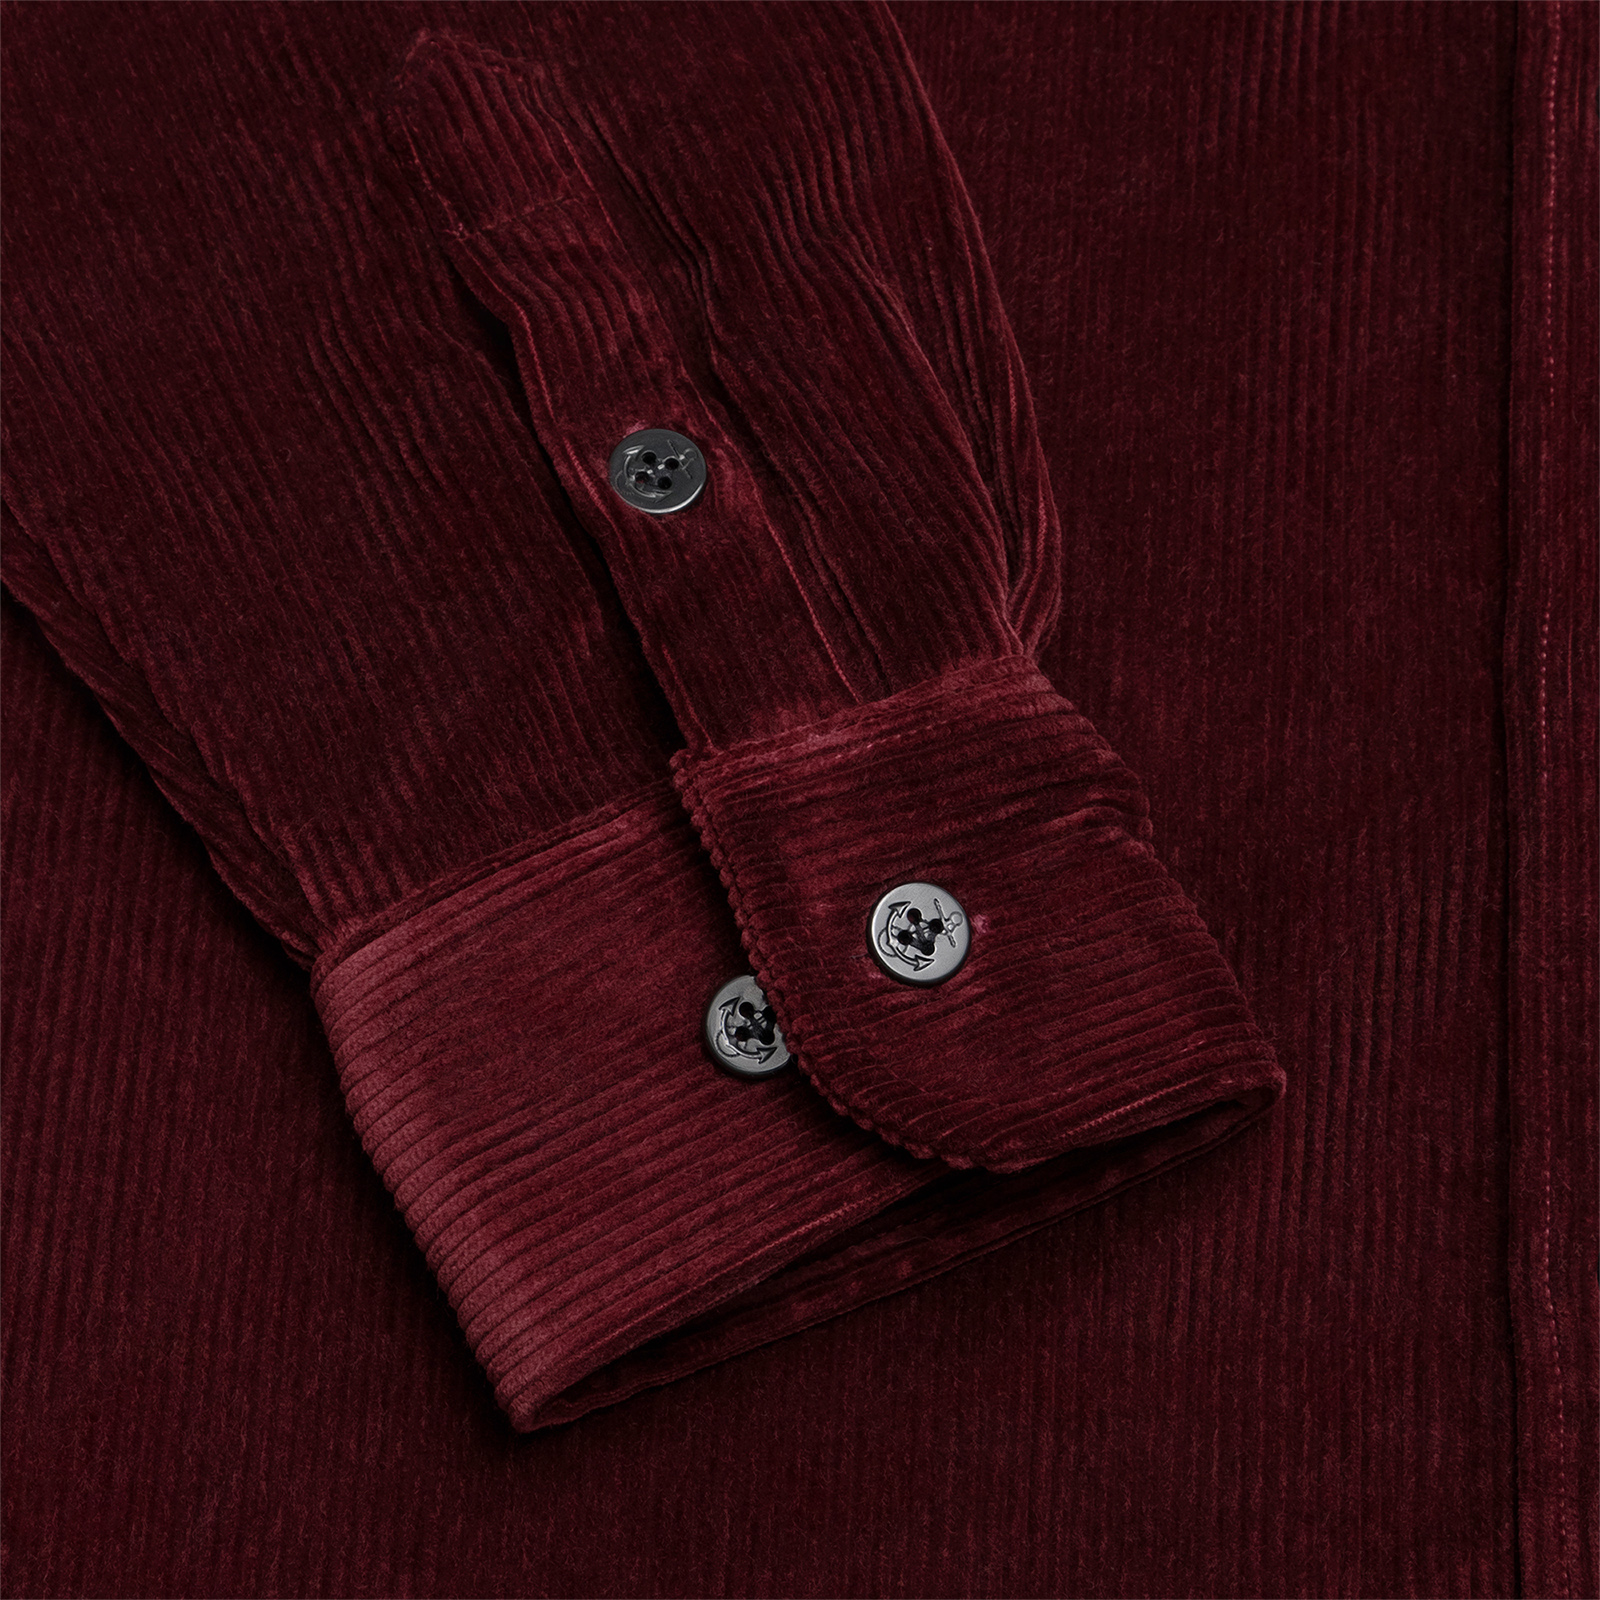 Sleeve close up product image